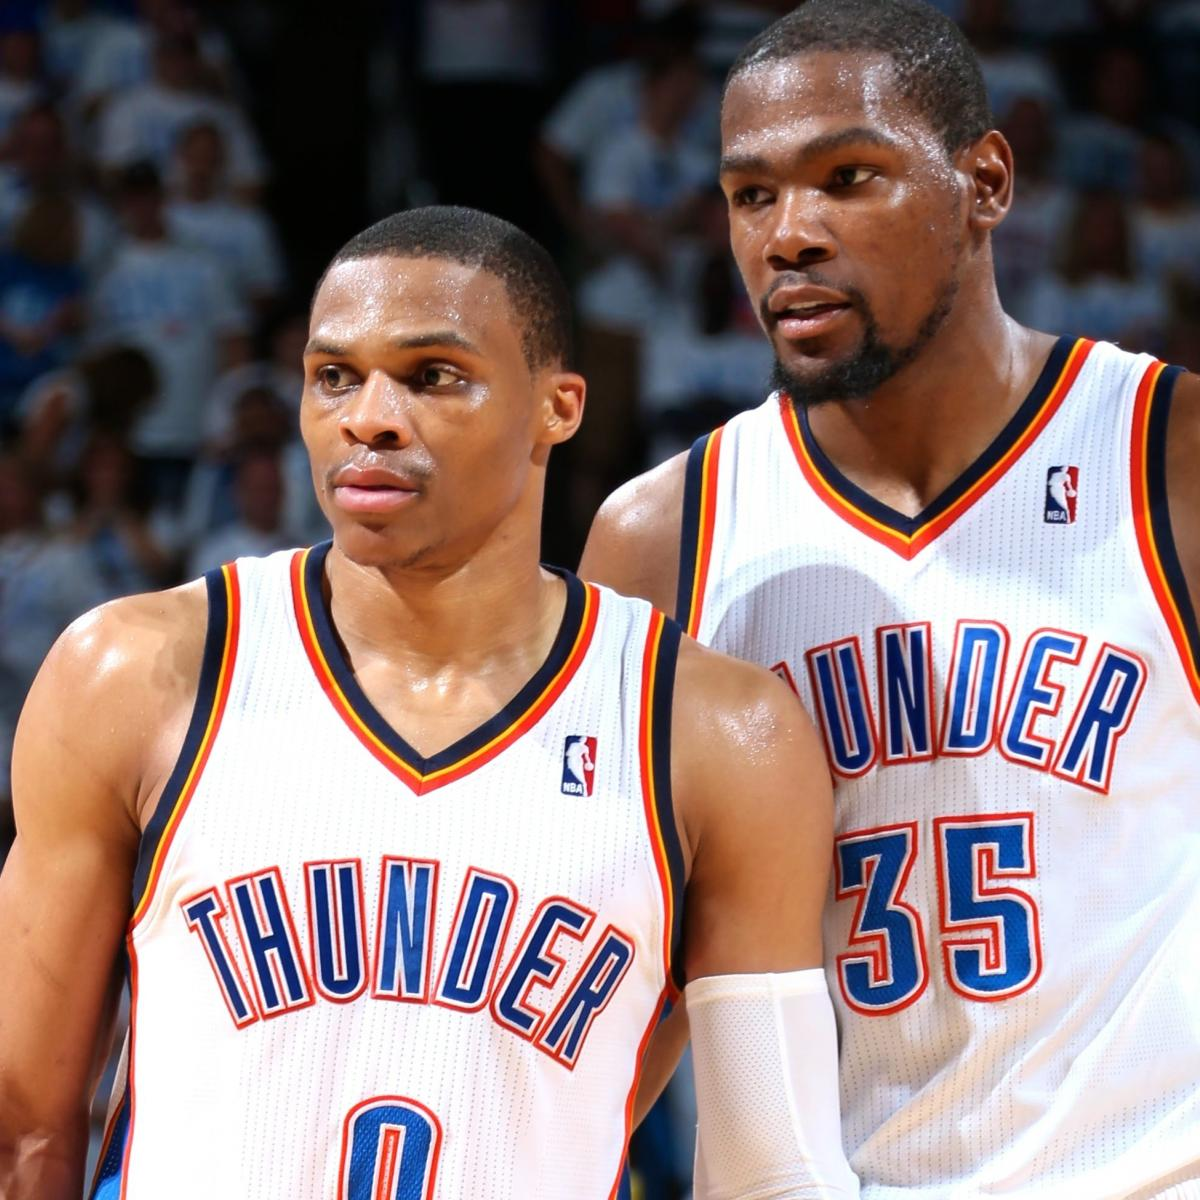 Rockets Vs Okc Game 6: Can Kevin Durant, Russell Westbrook And Thunder Ever Get